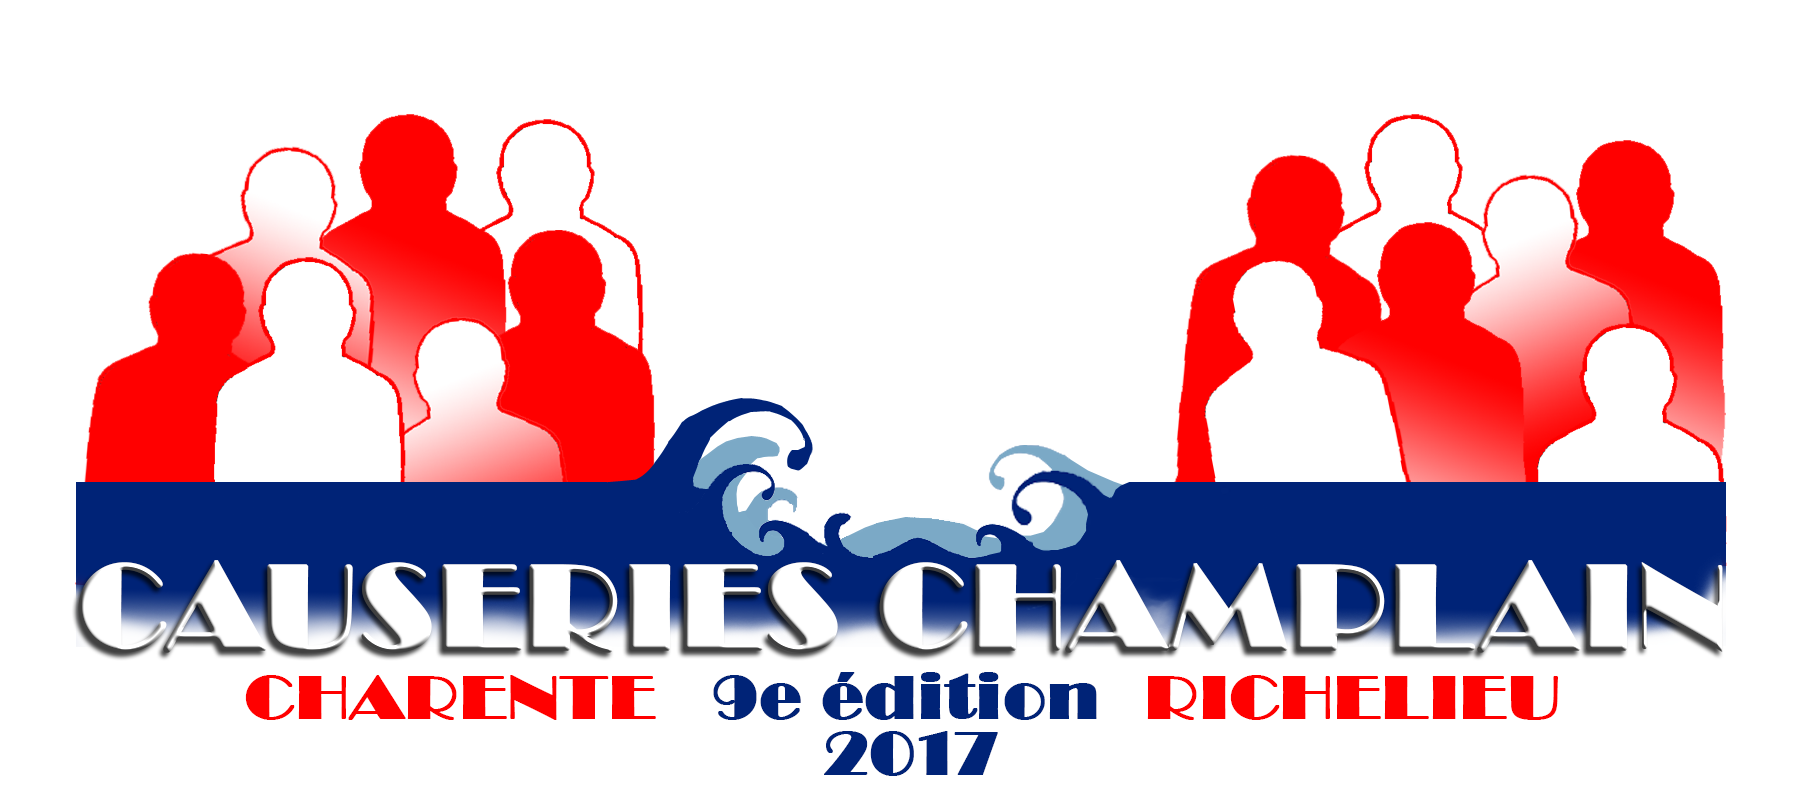 Causeries Champlain 9e édition le 7 septembre 2017 à Sorel